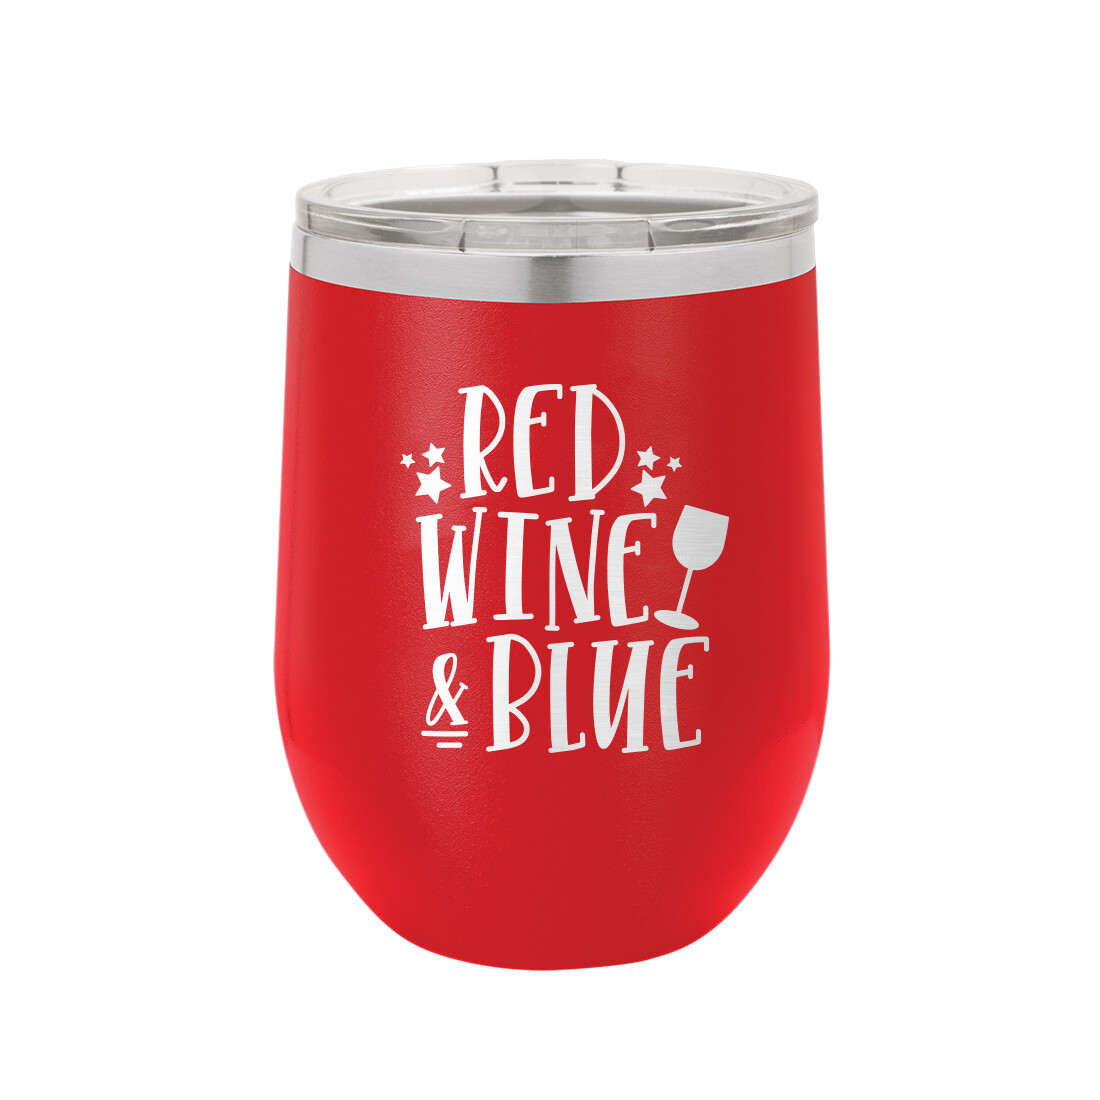 Red, Wine & Blue Tumbler